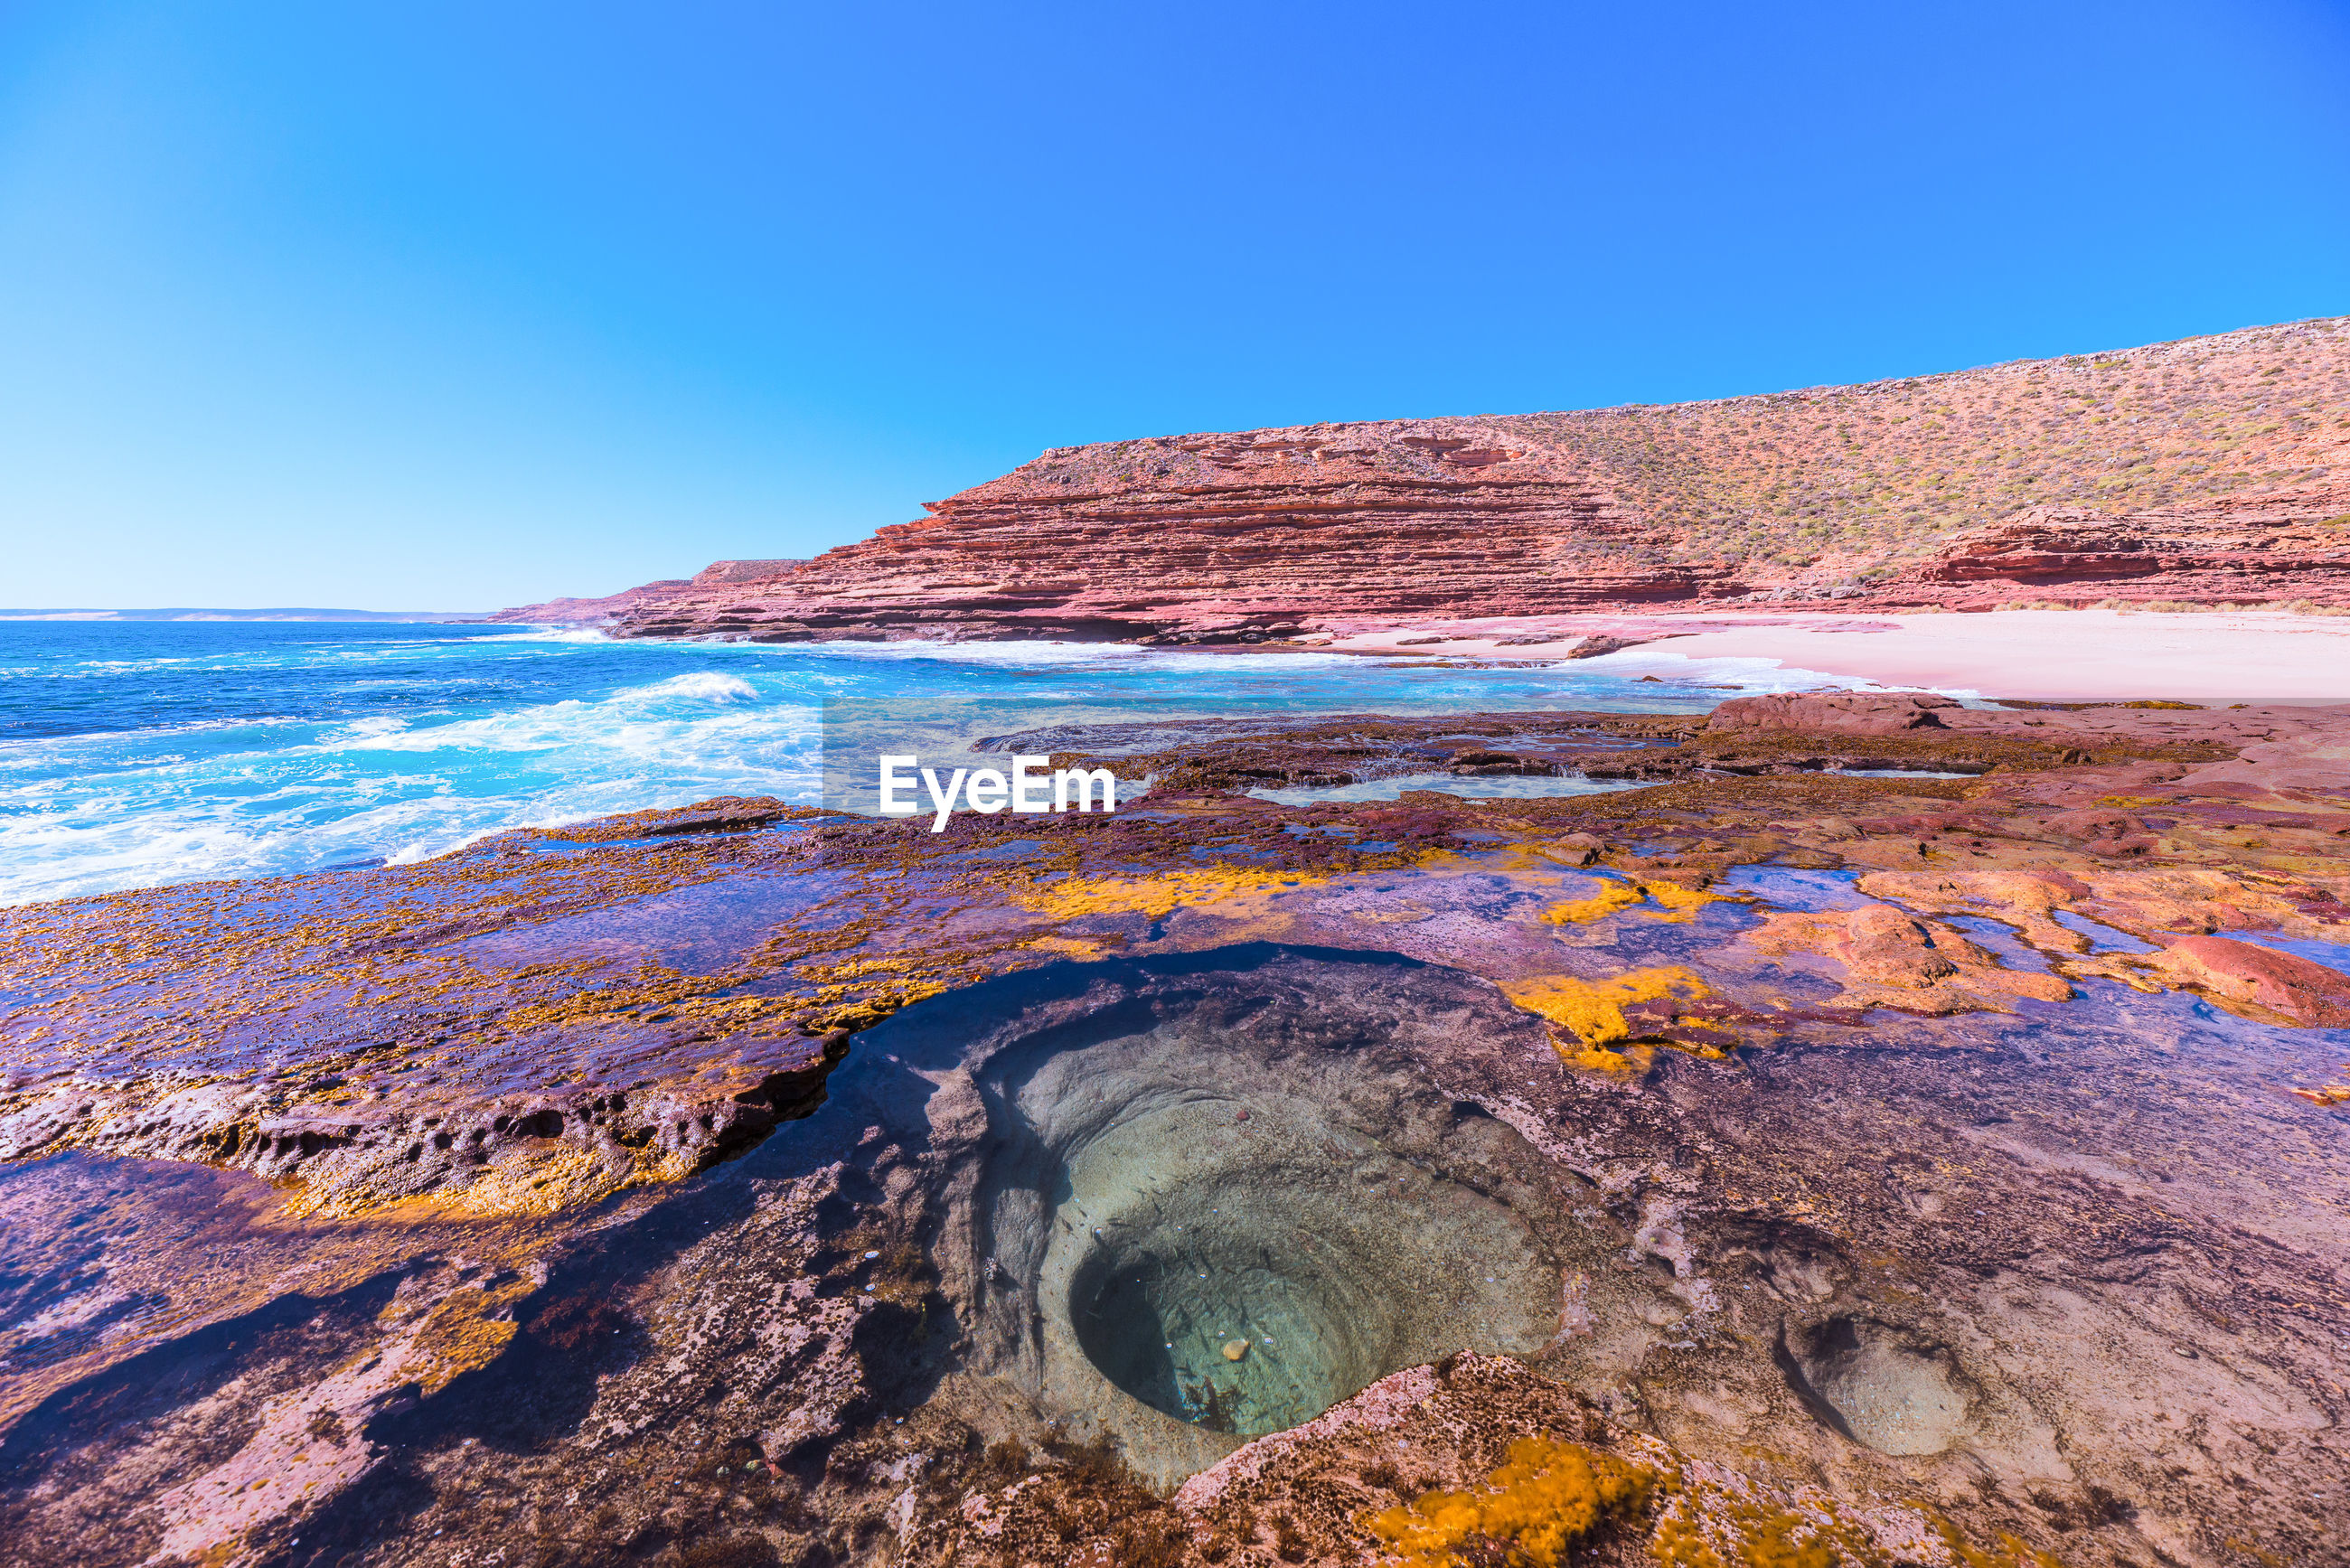 Scenic view of rock formation at sea against clear blue sky